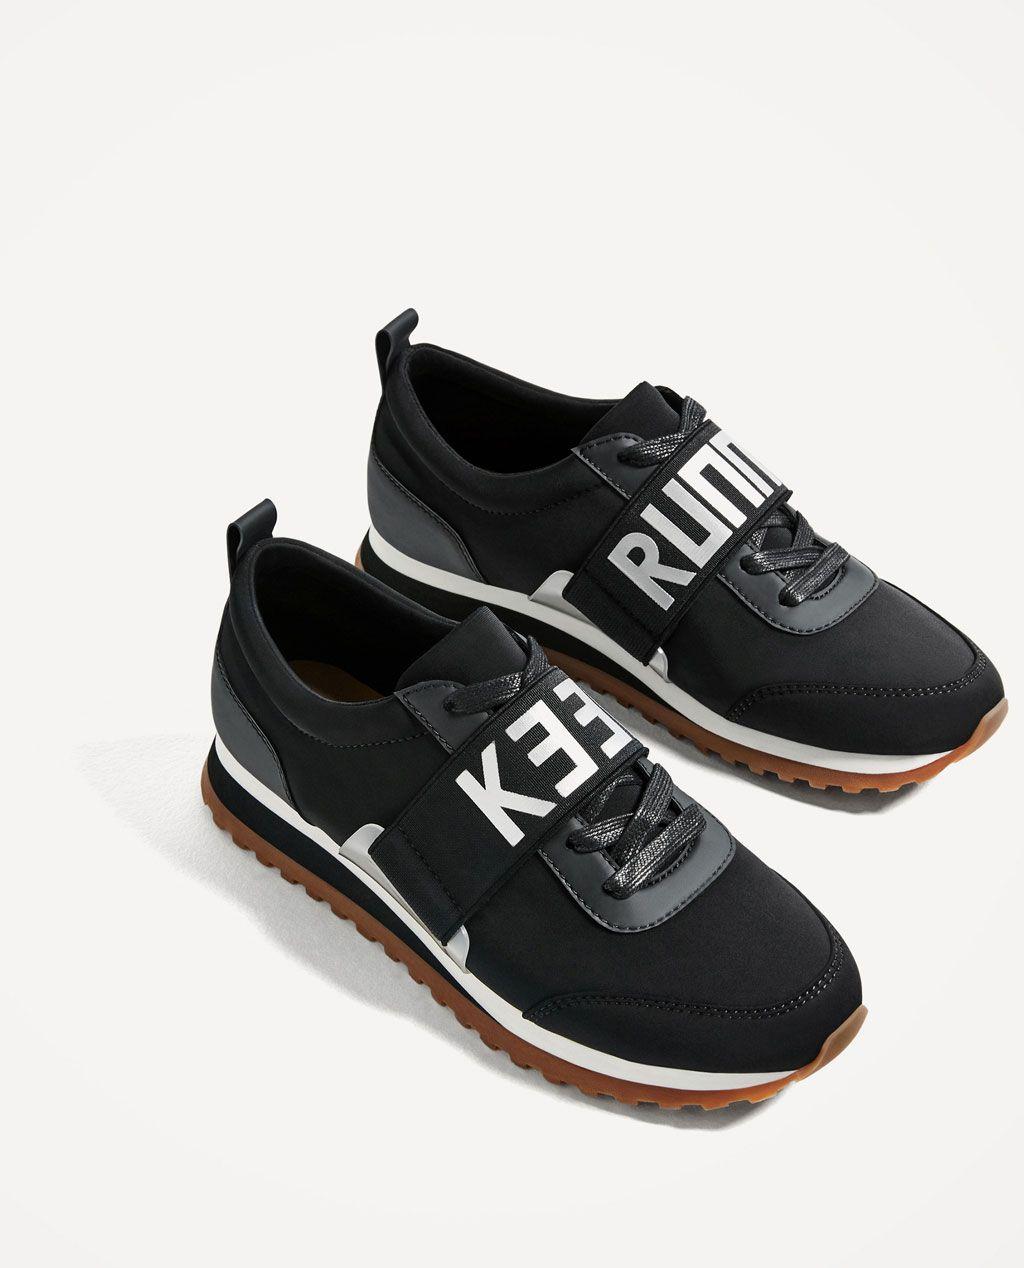 BLACK SLOGAN SNEAKERS - NEW IN